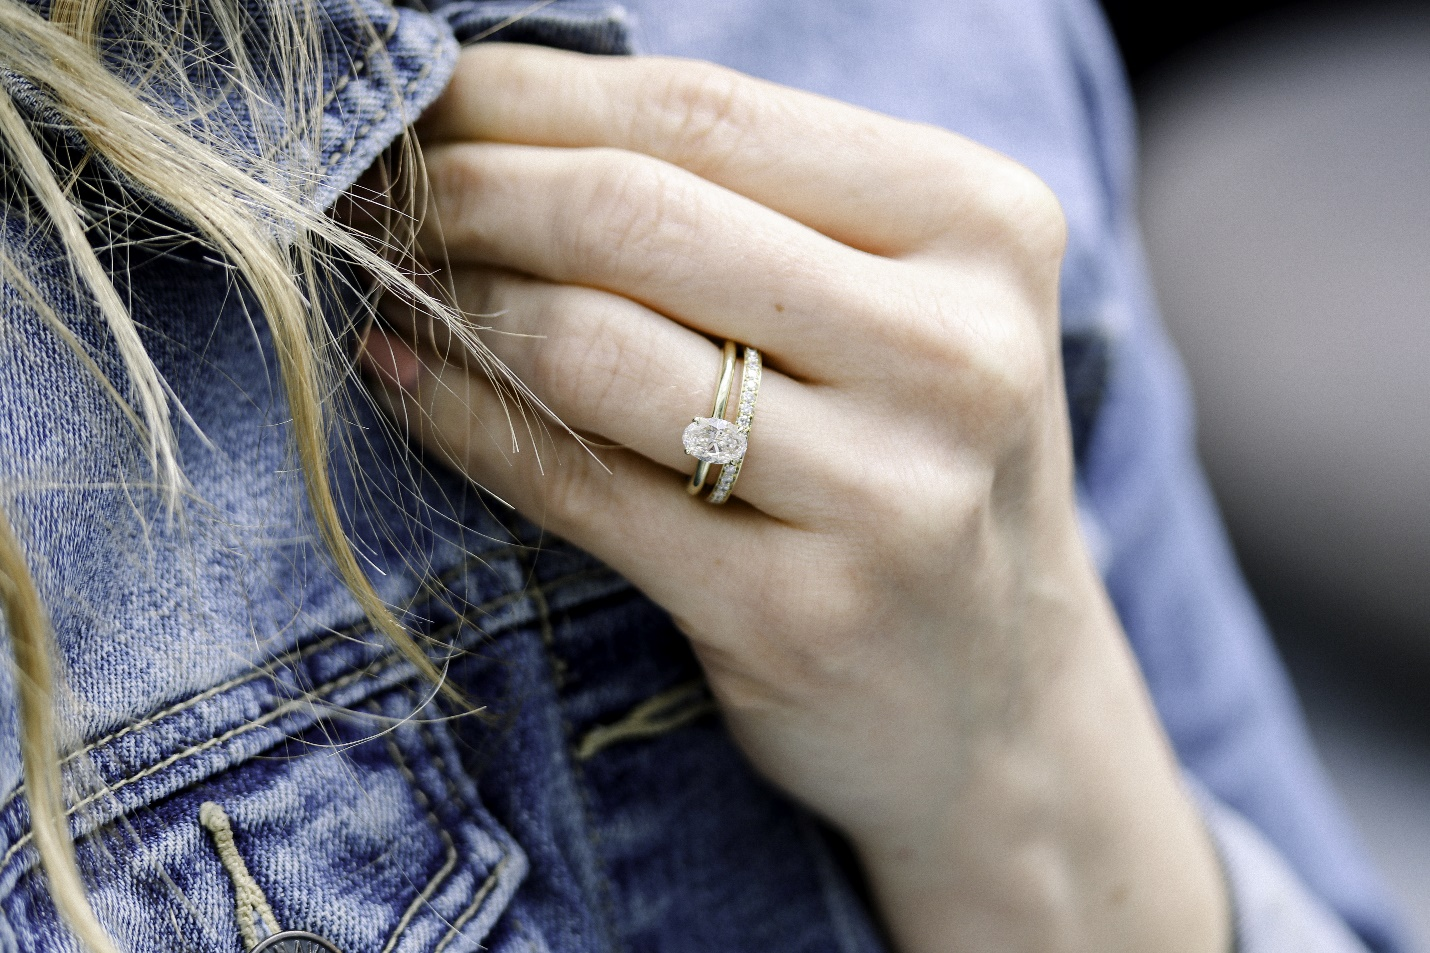 bride wearing a resized engagement ring